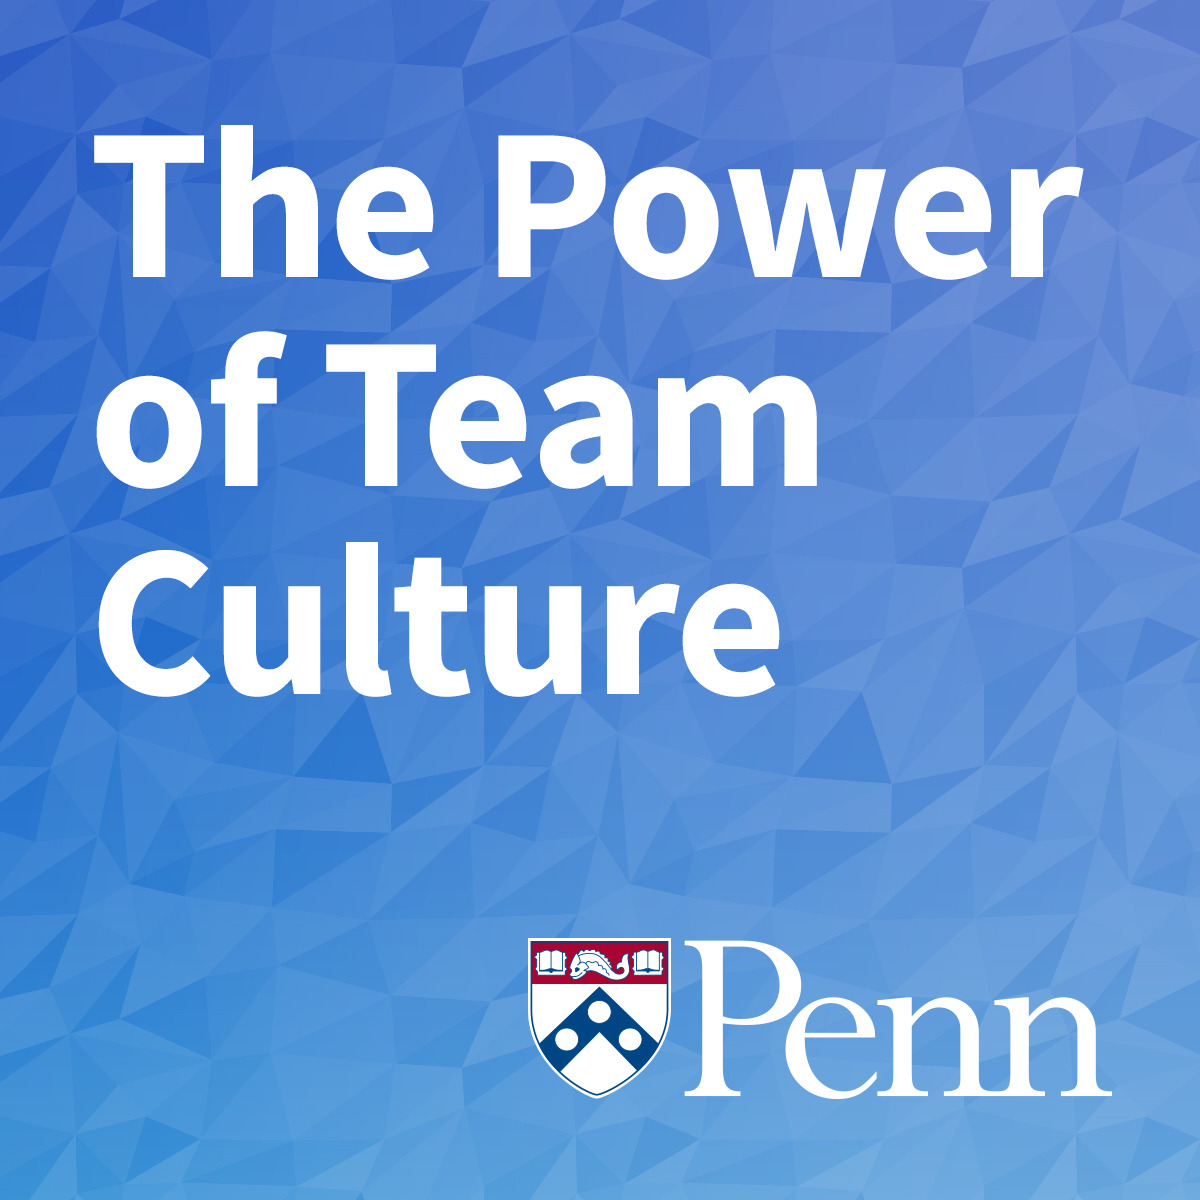 The Power of Team Culture course image